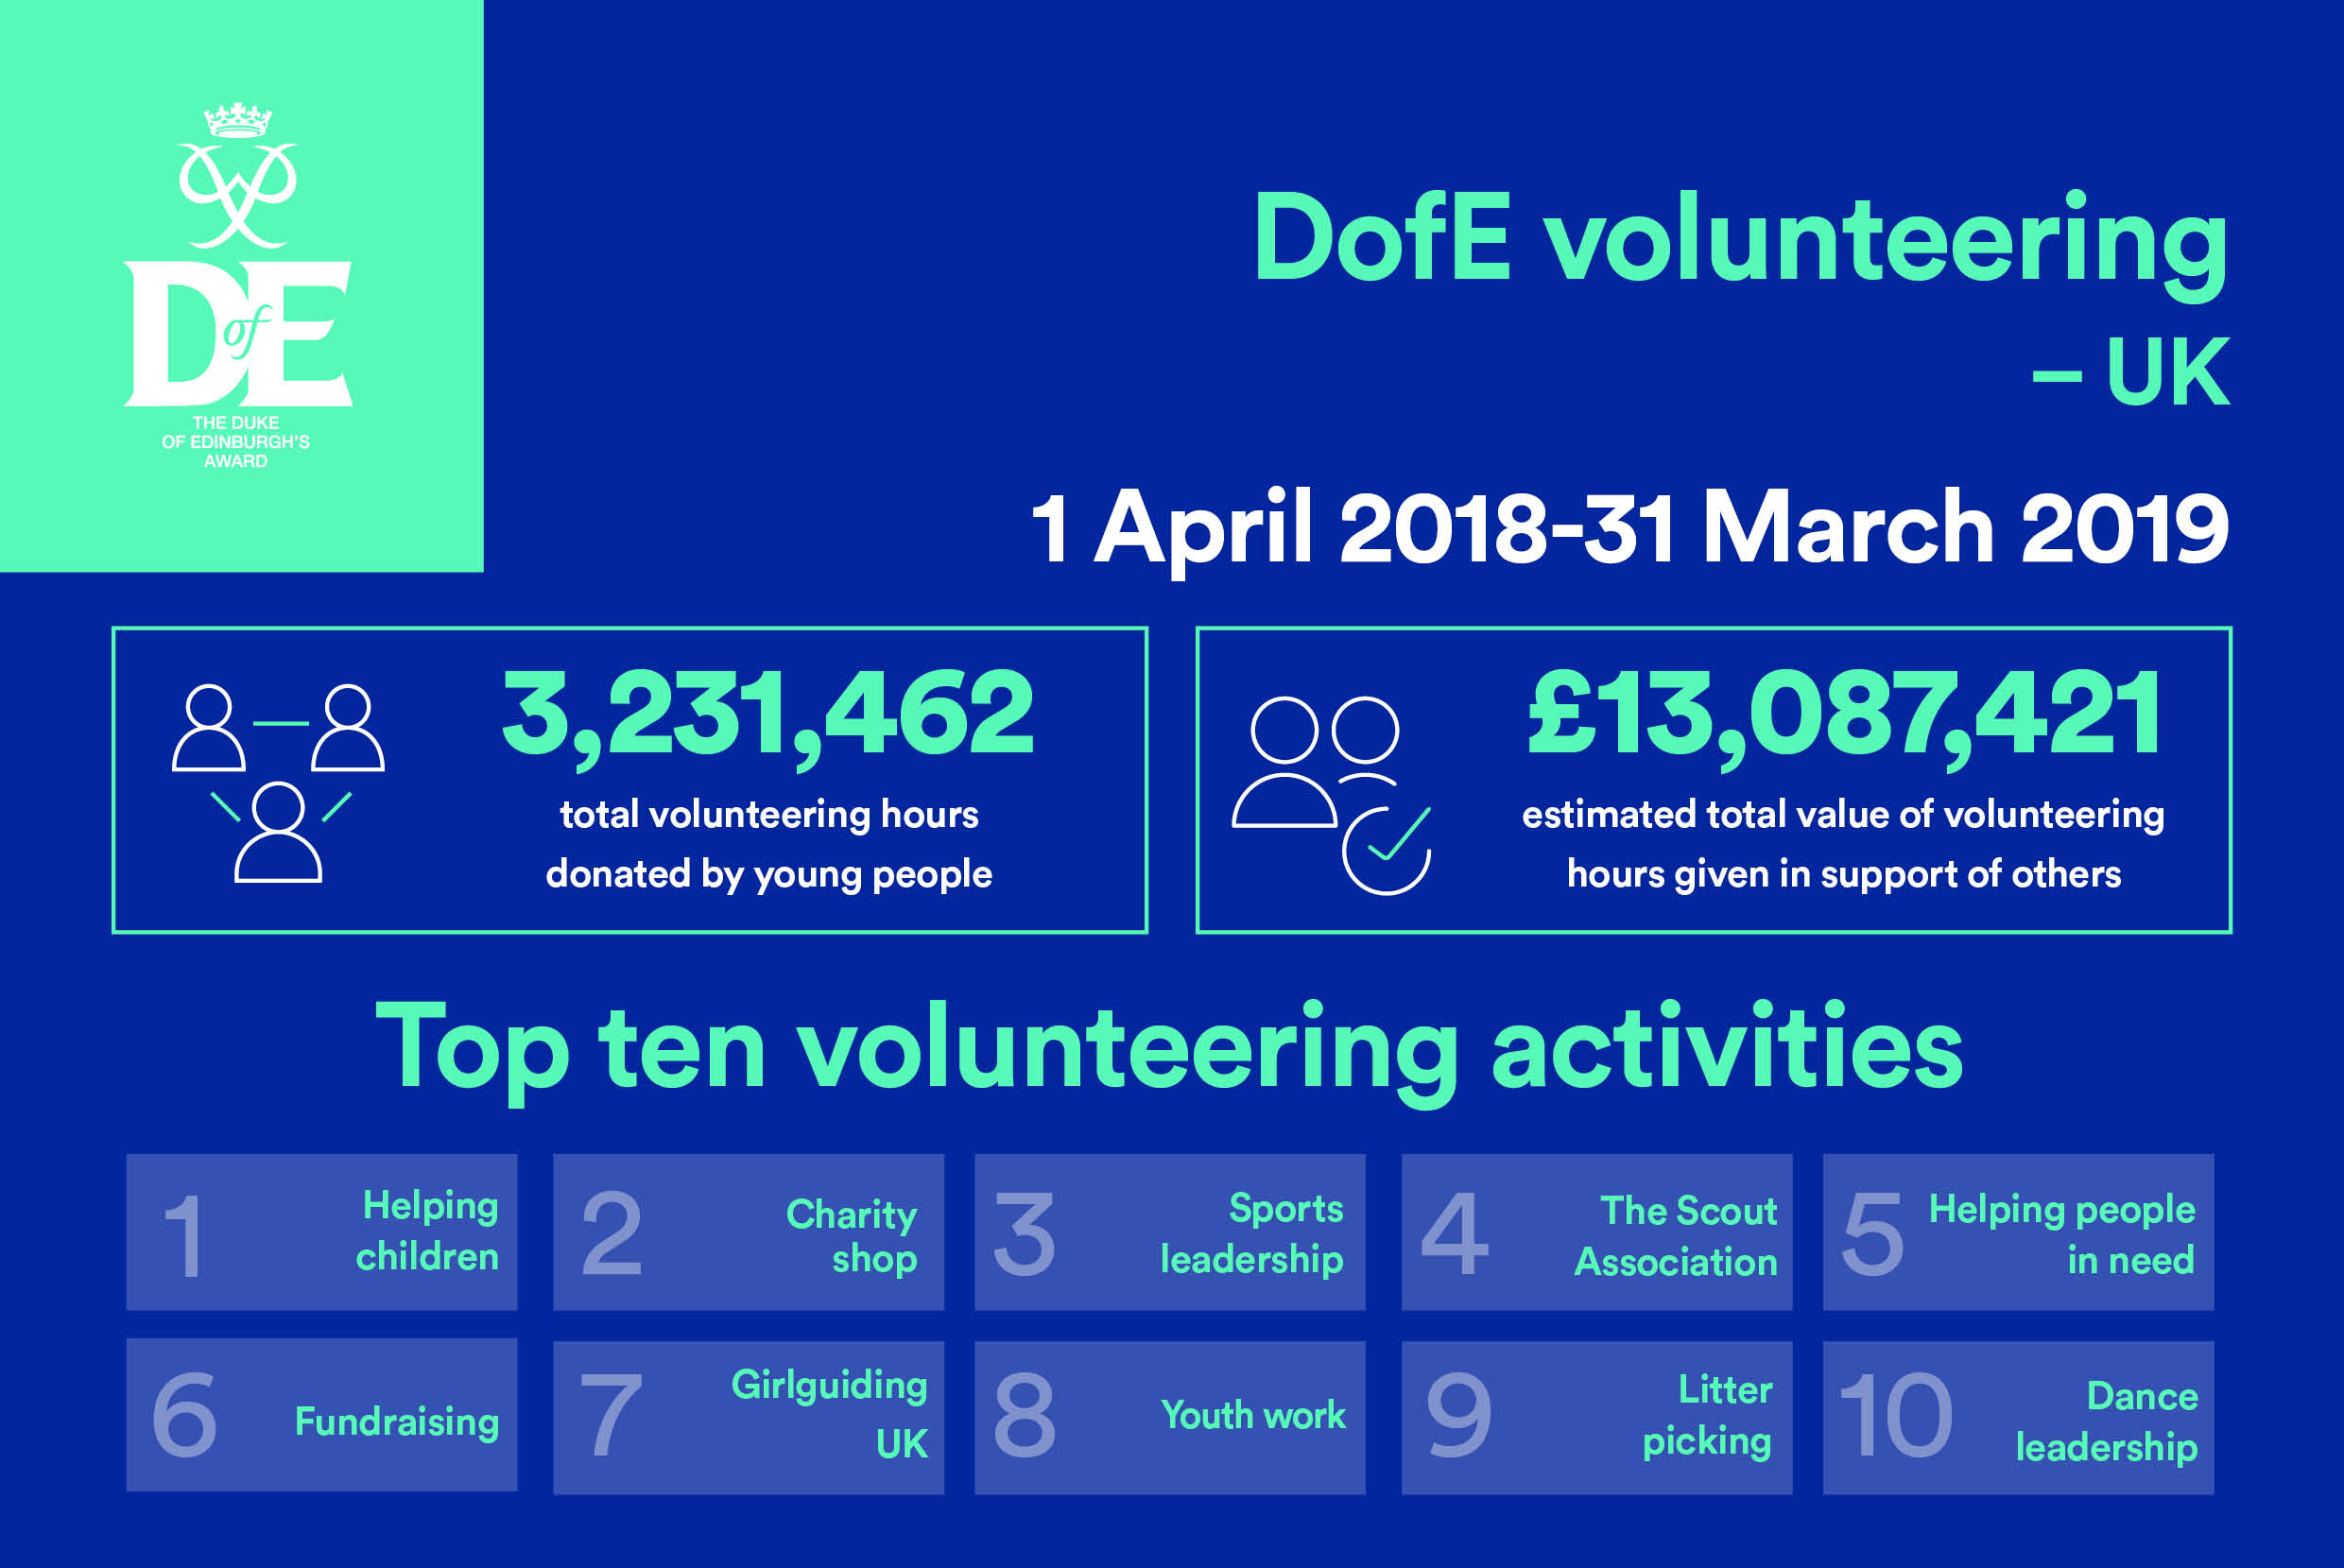 Volunteering statistics infographic in blue and green